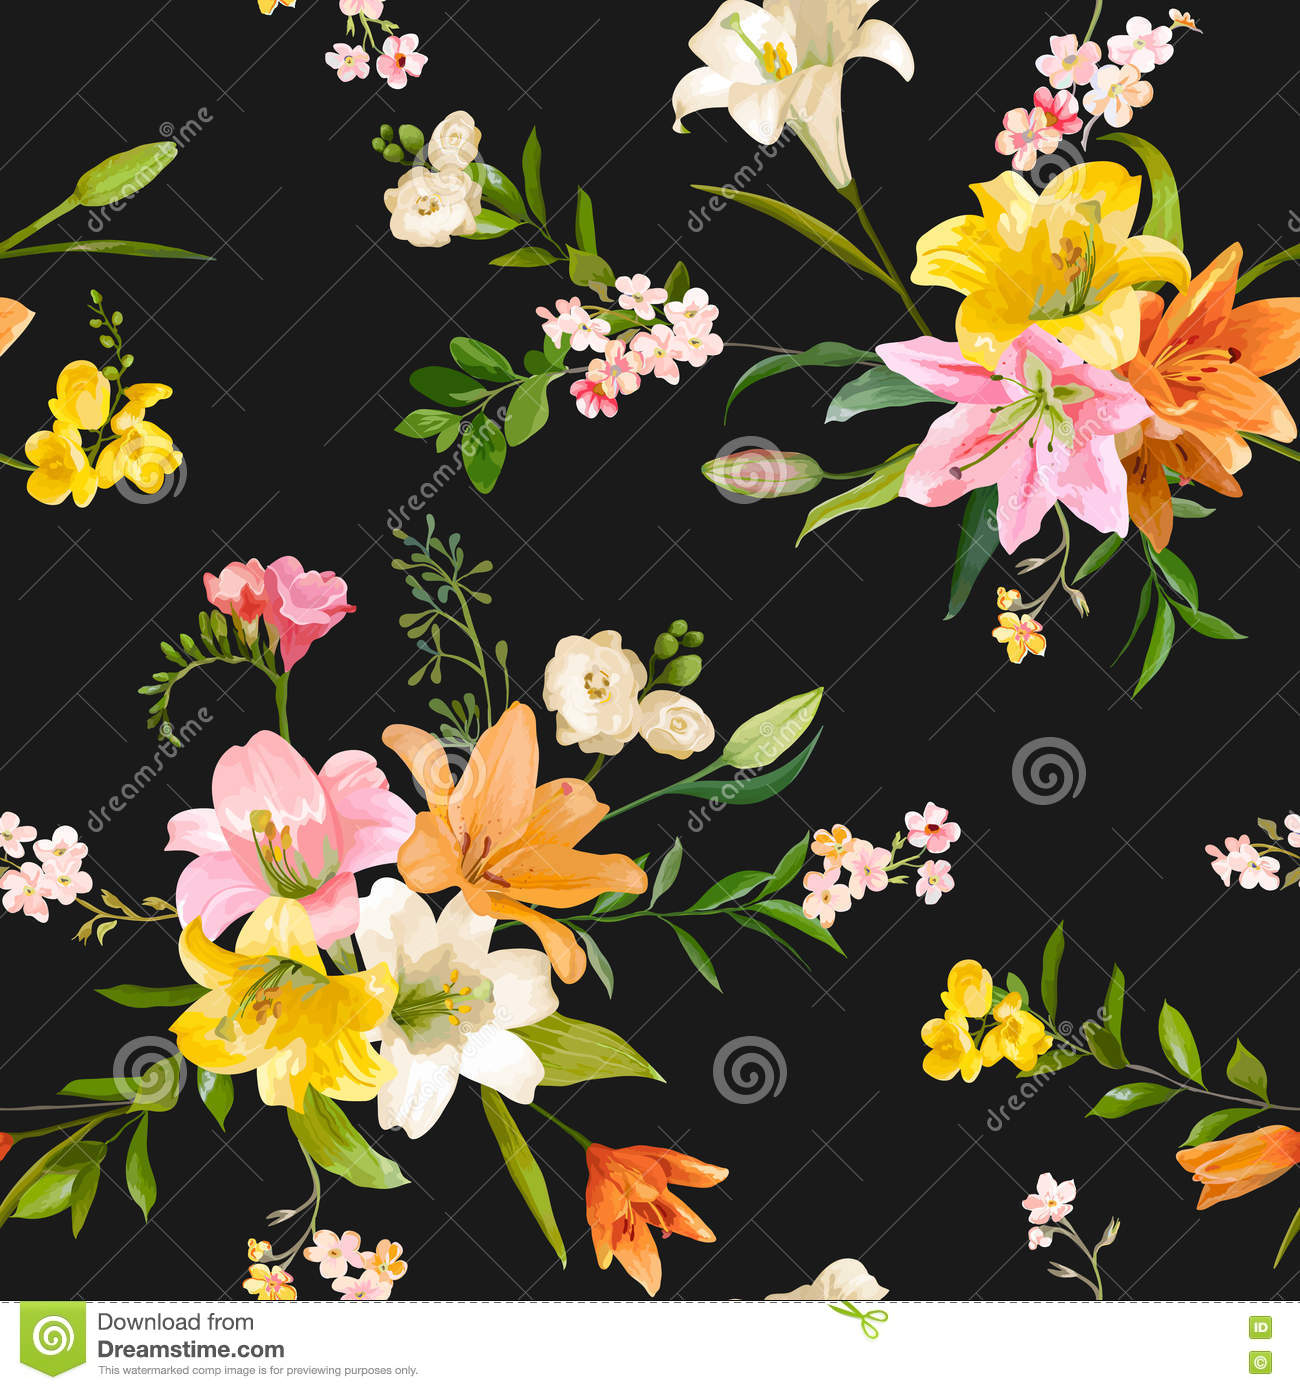 Vintage spring flowers background seamless floral lily pattern download comp mightylinksfo